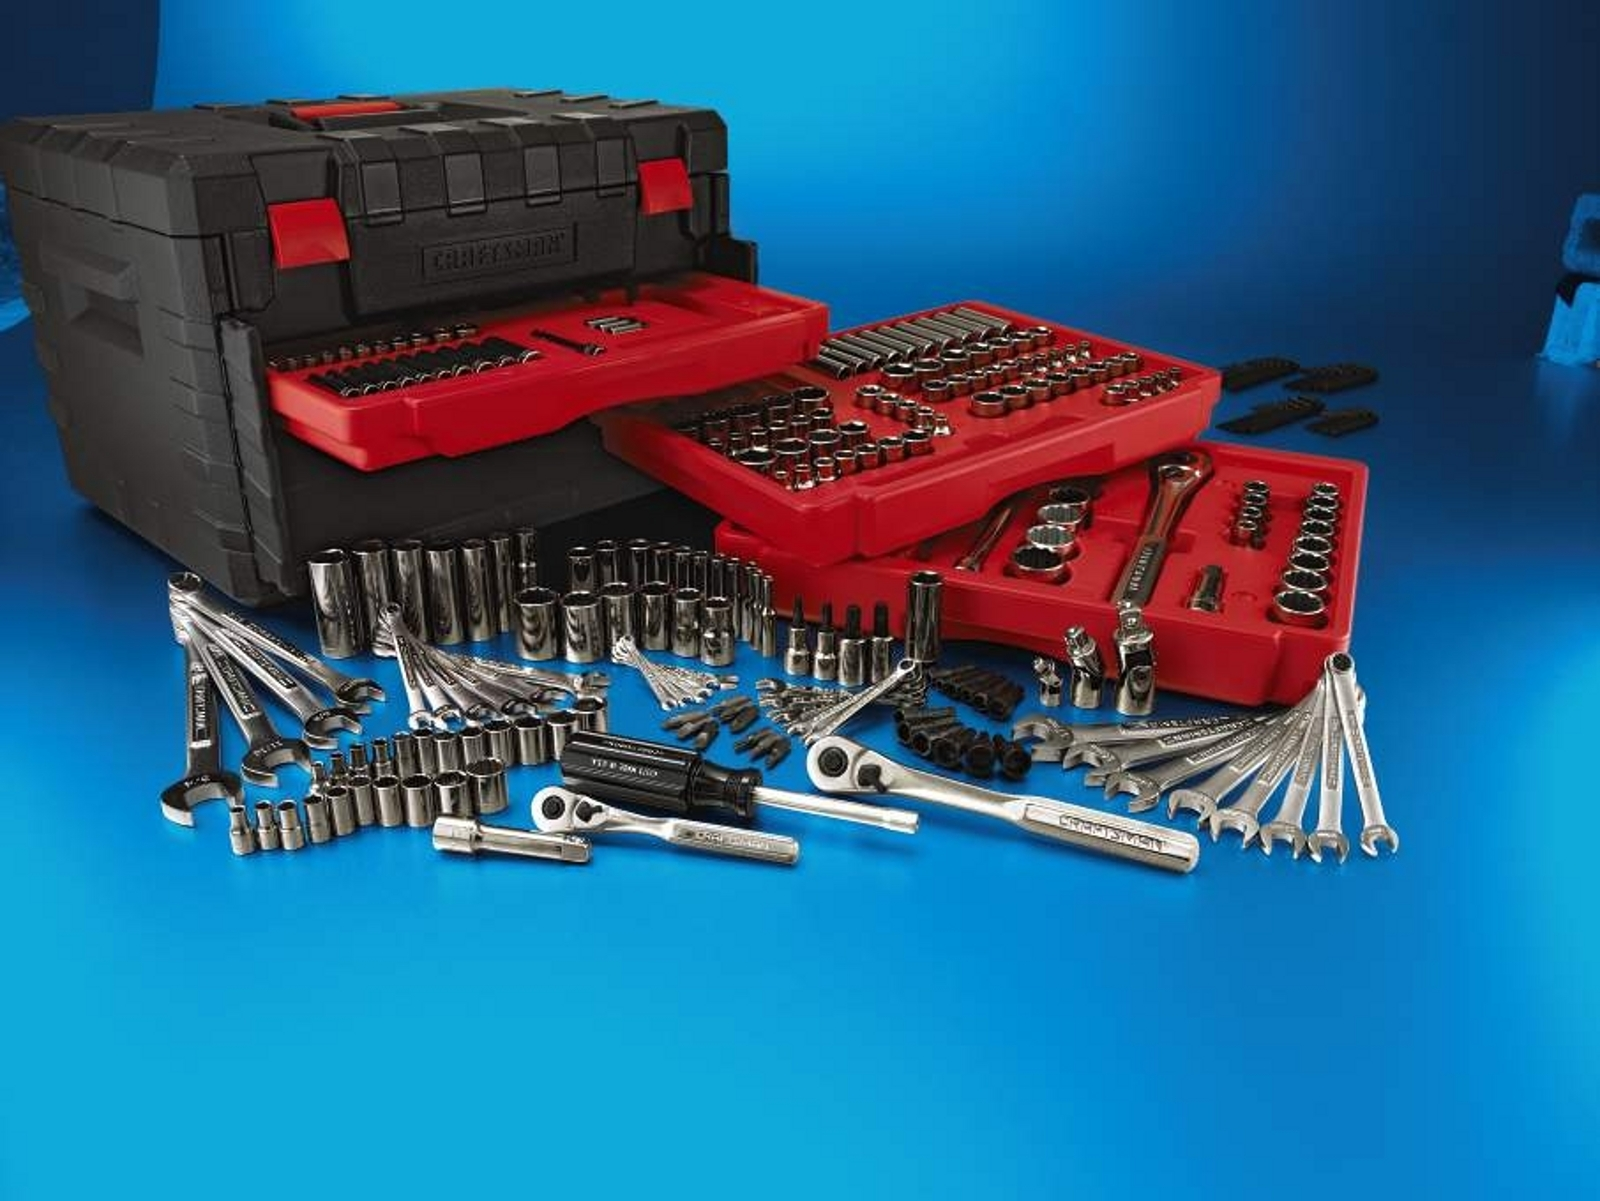 Craftsman 258-Piece Mechanics Tools Set with 3 Drawer Case